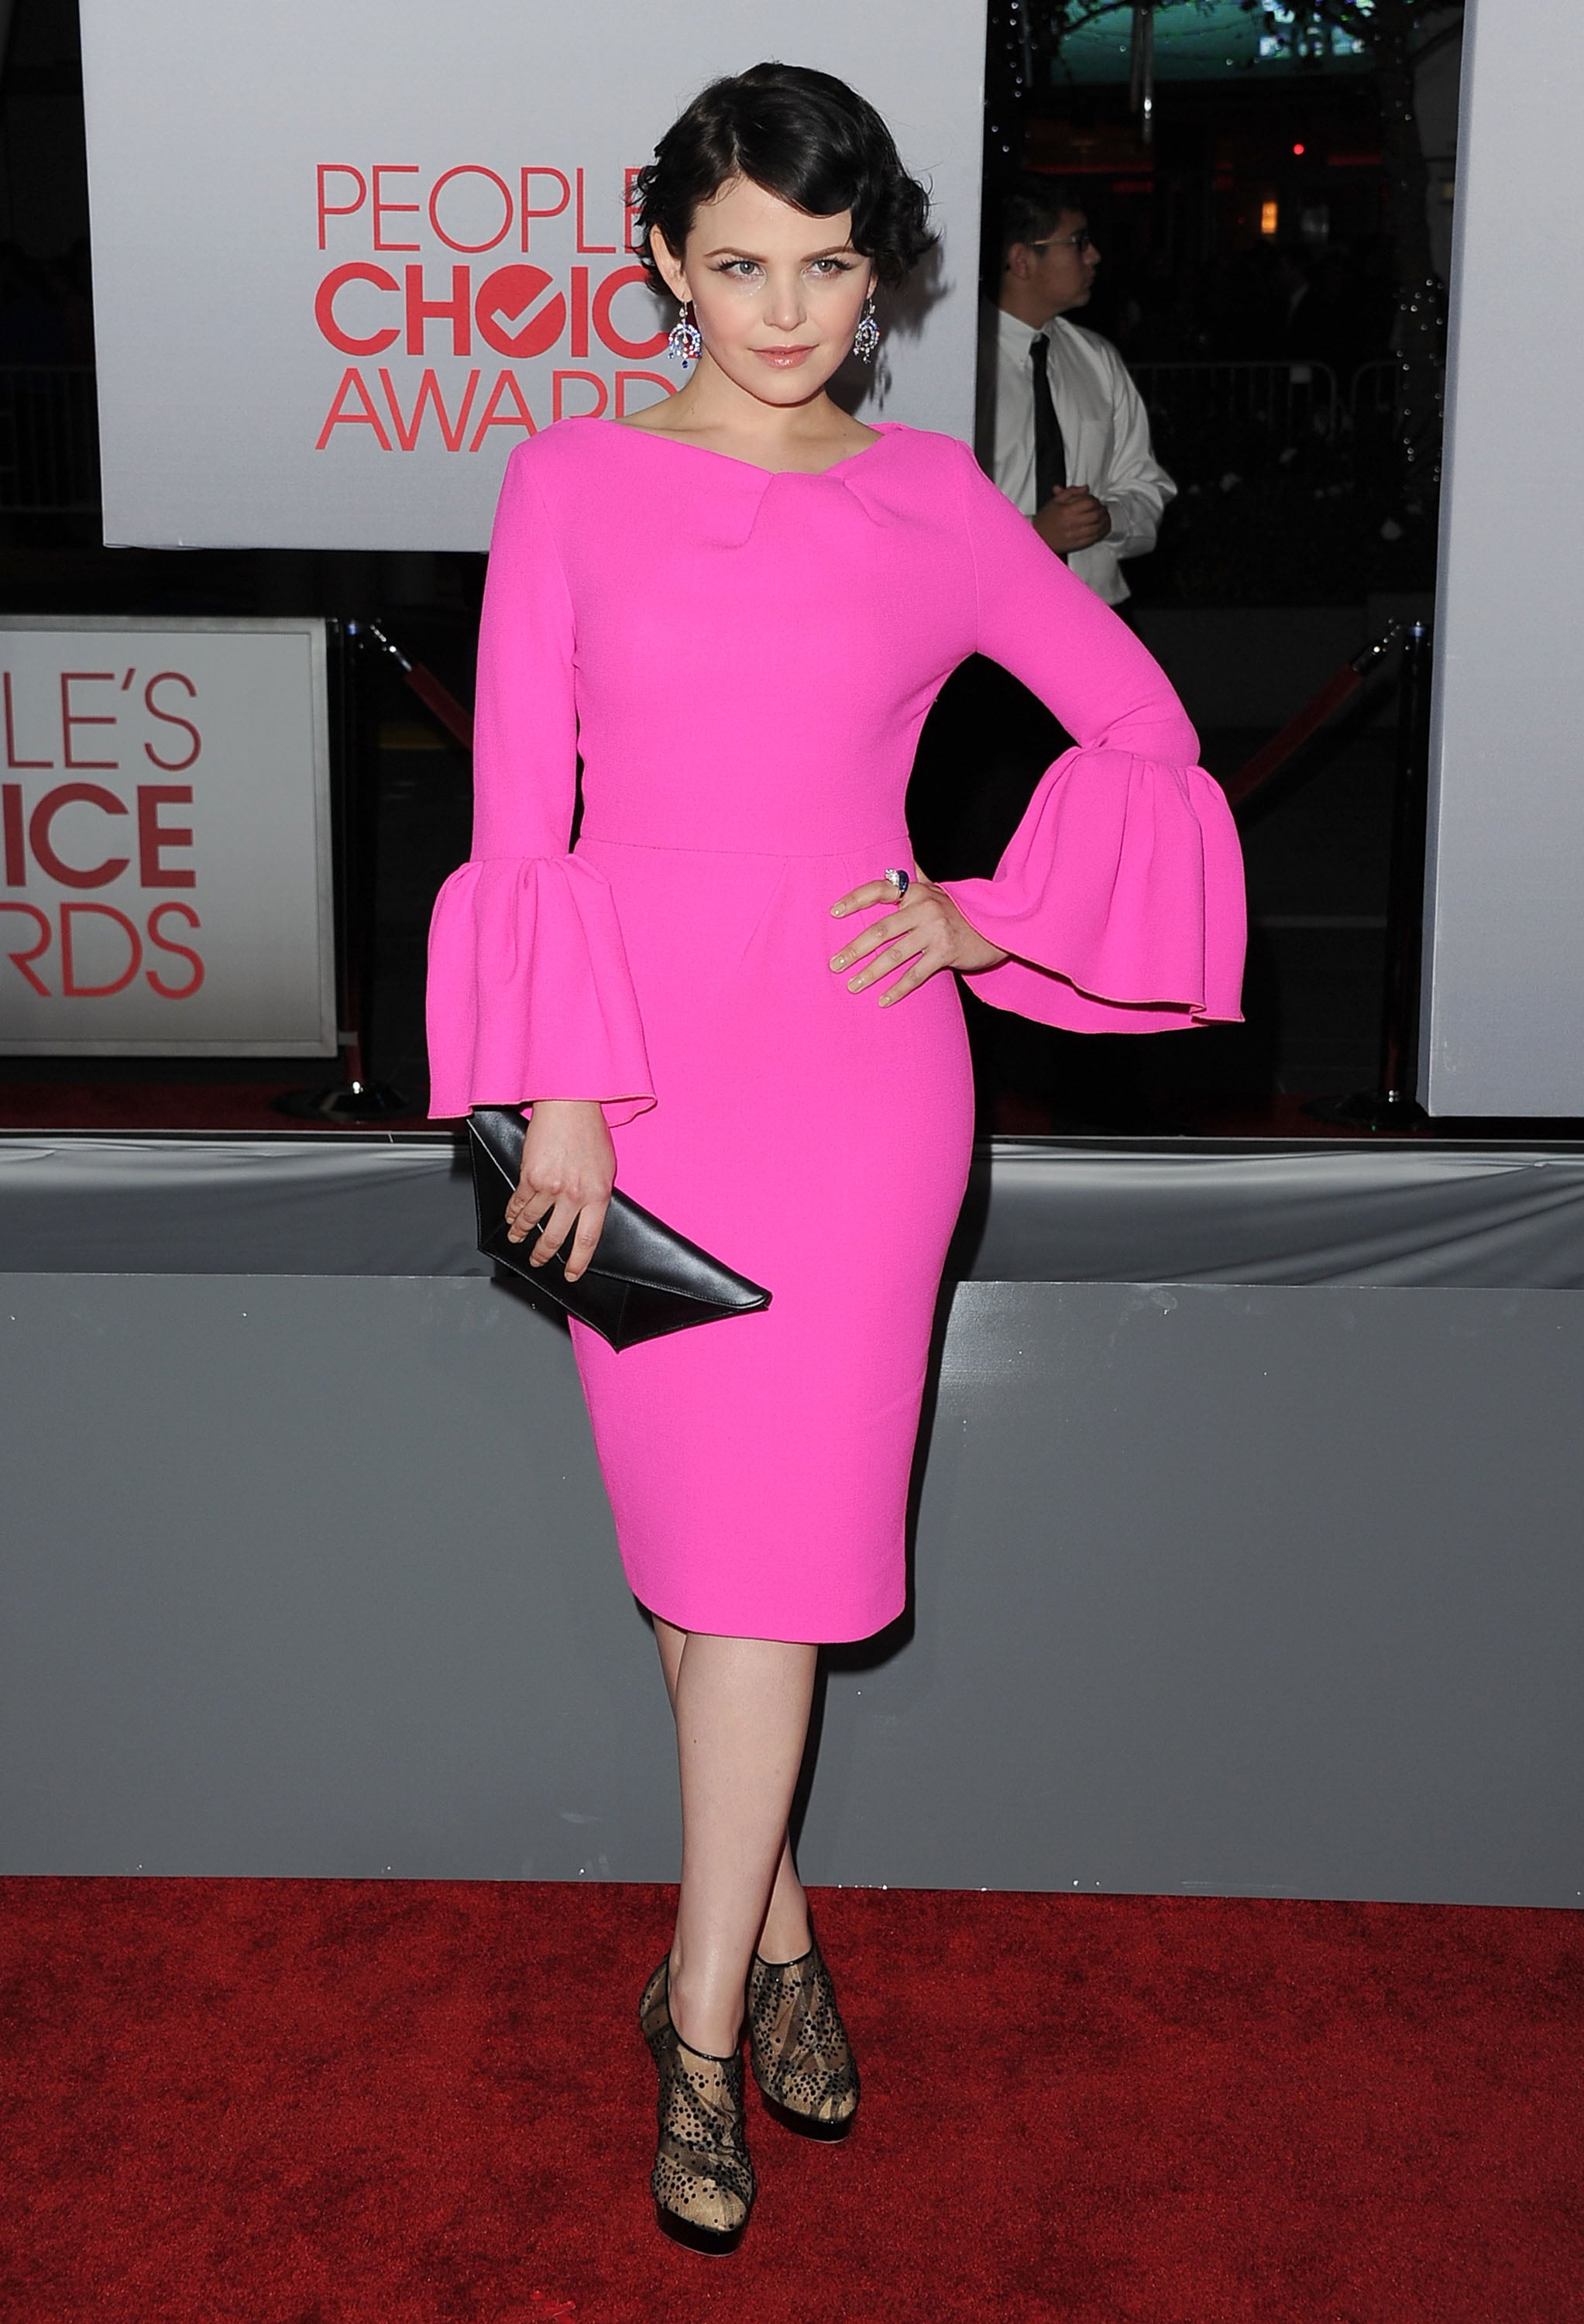 Ginnifer Goodwin had on lace booties for the People's Choice Awards.